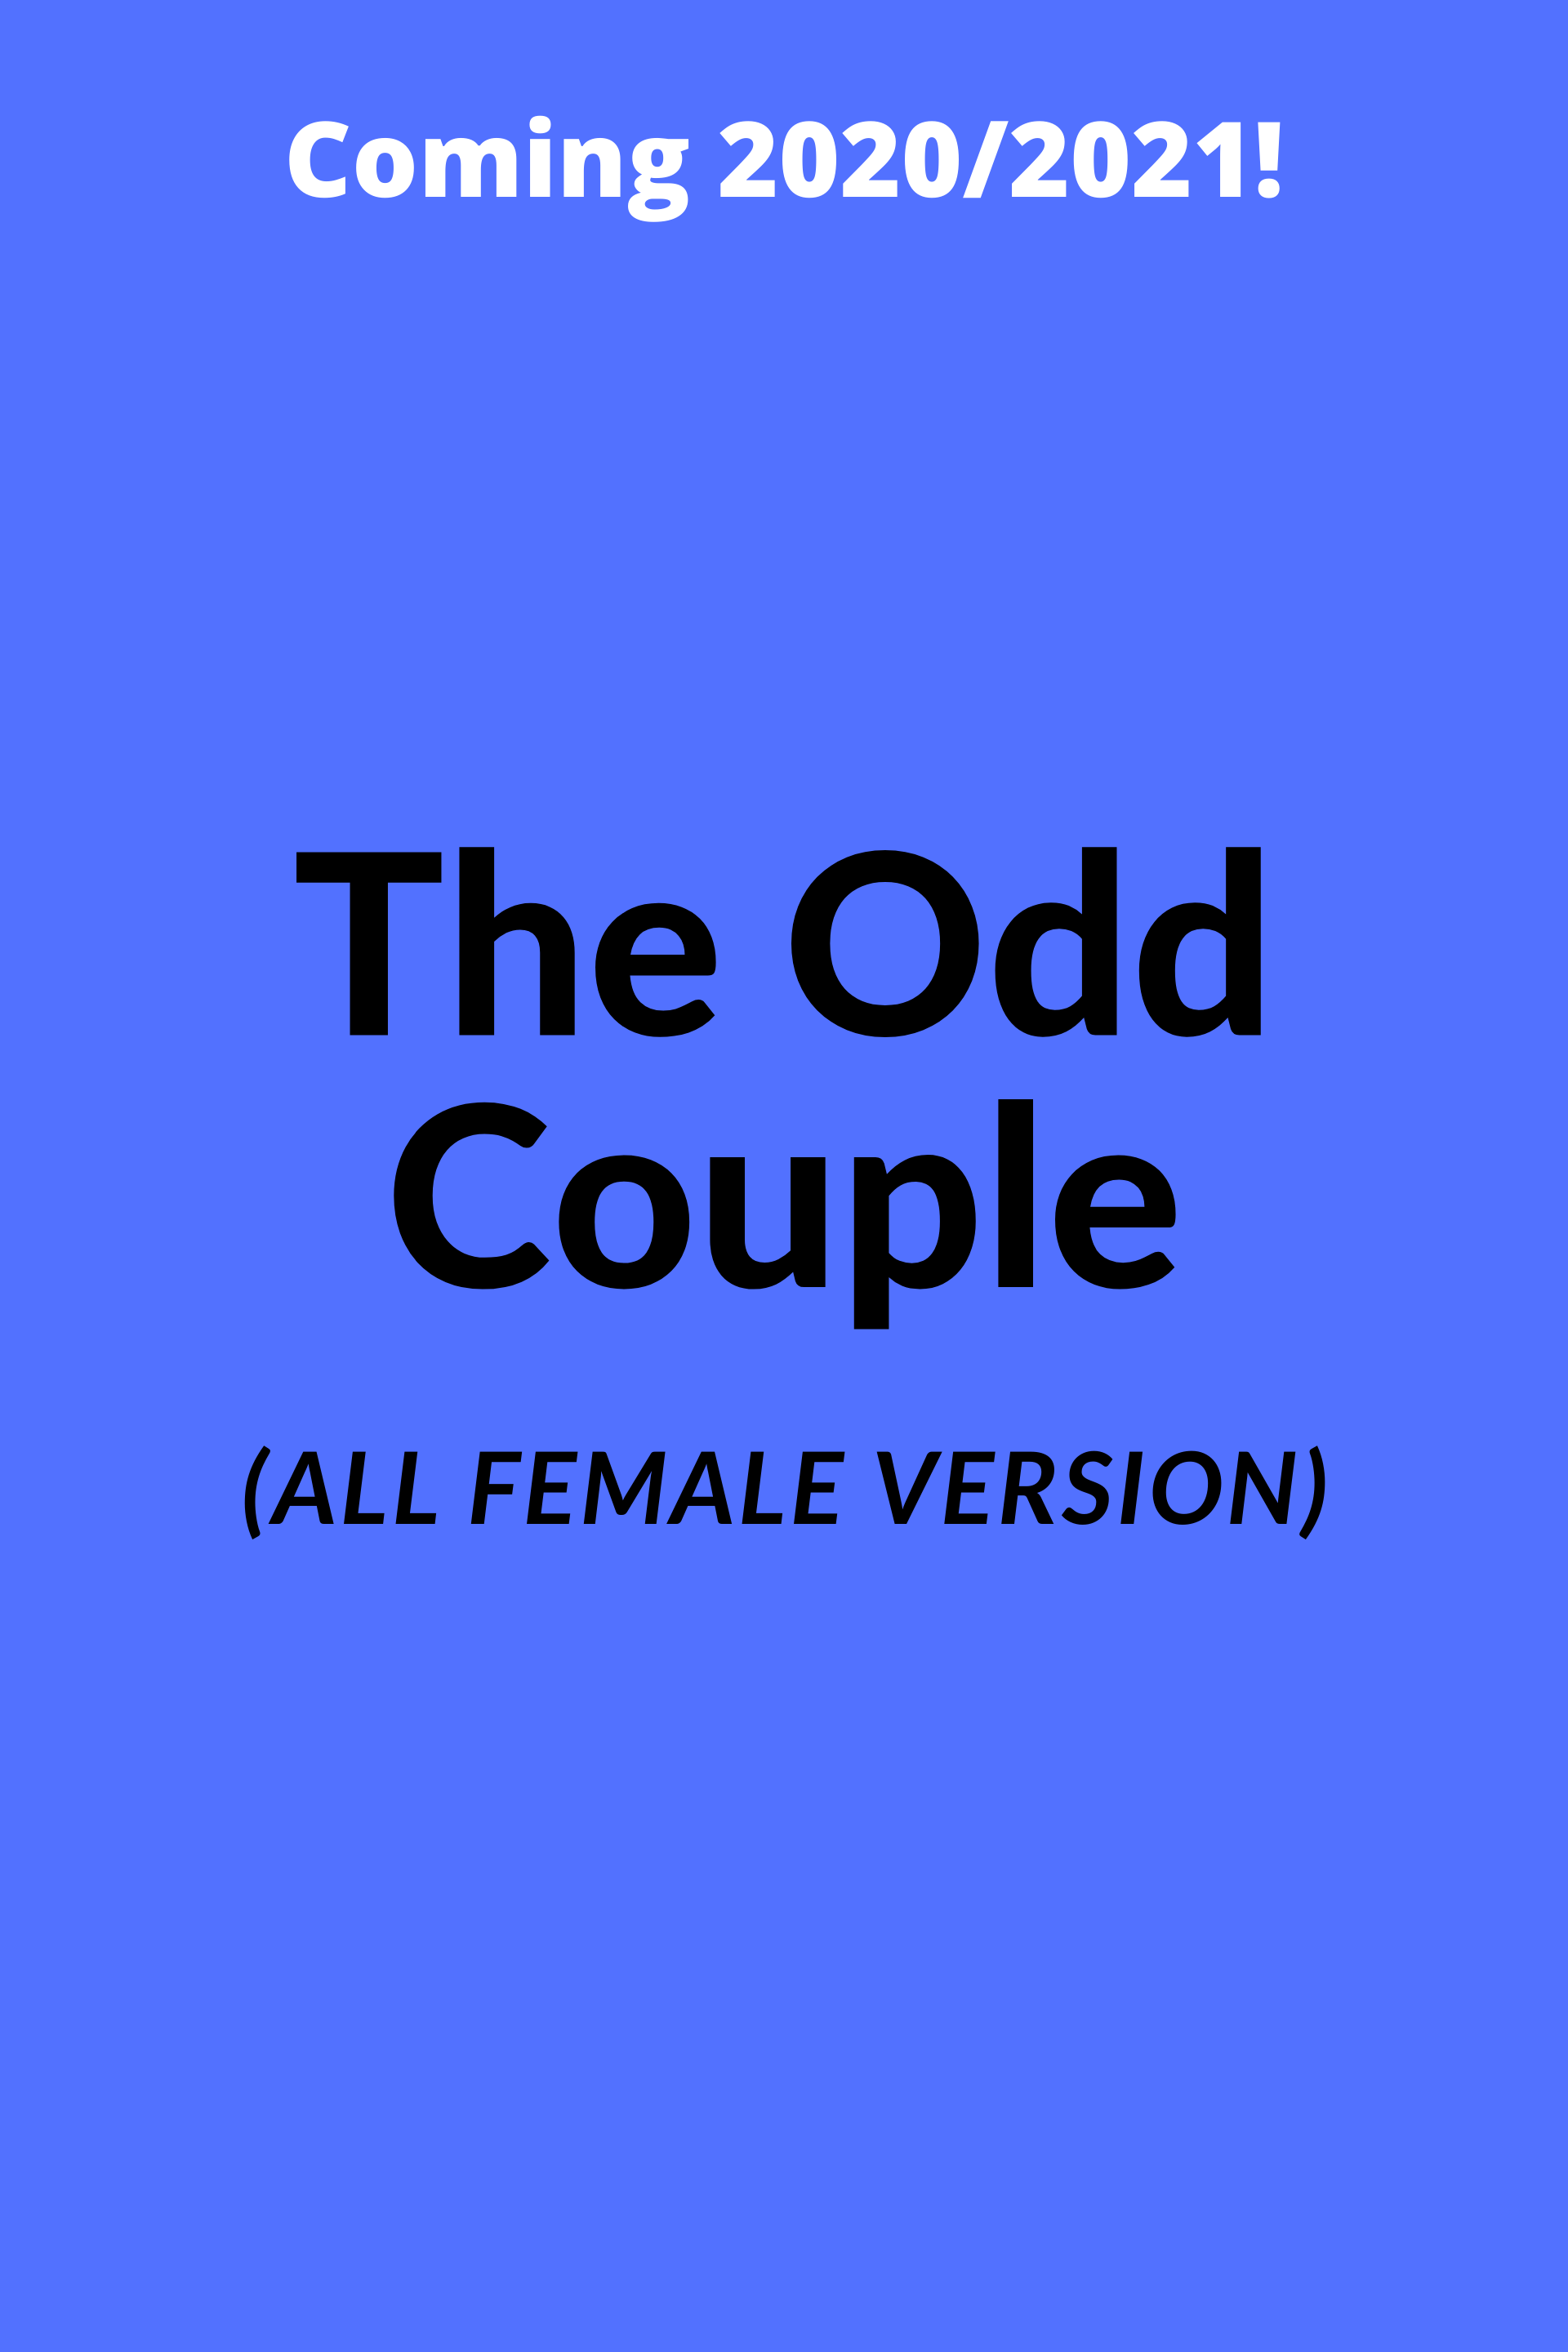 The Odd Couple (Female Version)